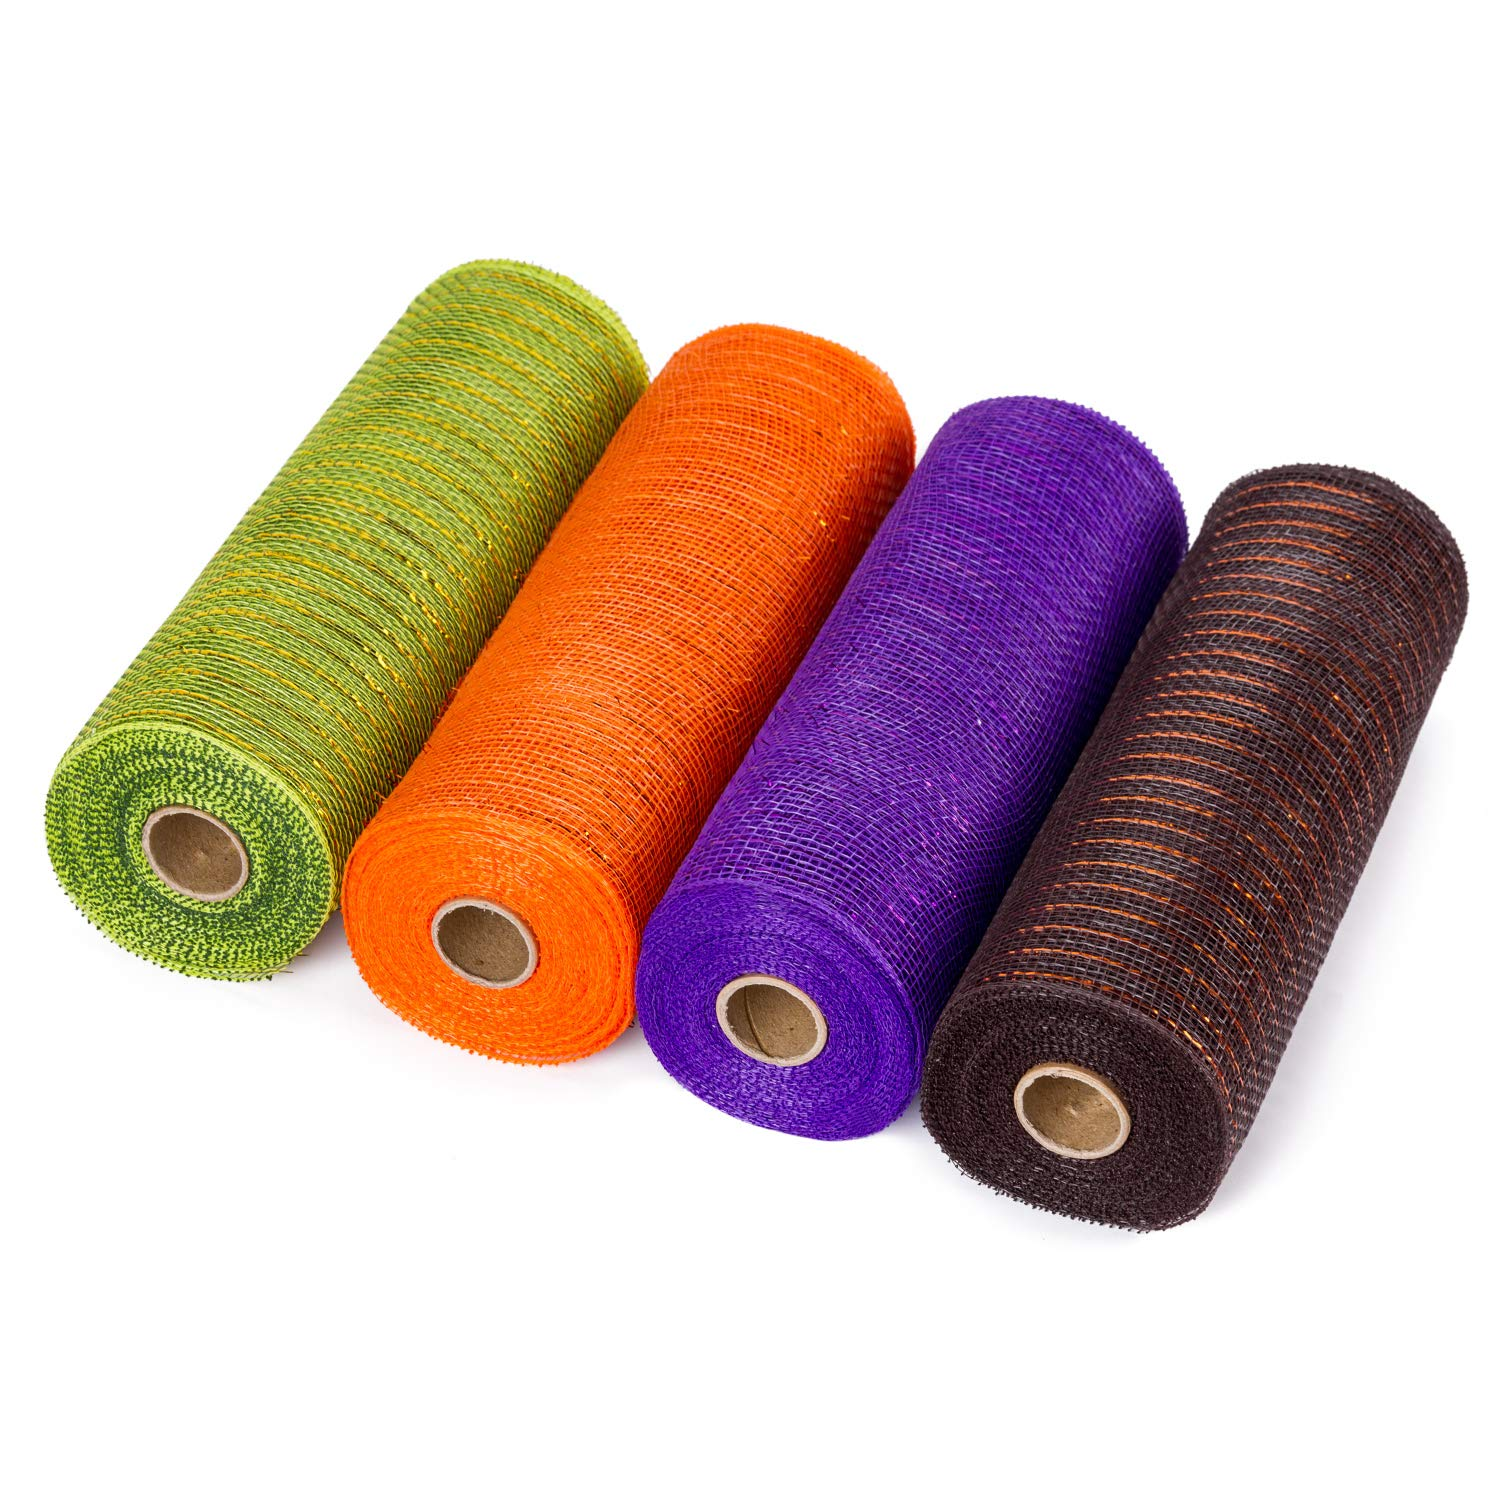 LaRibbons Deco Poly Mesh Ribbon - 10 inch x 30 feet Each Roll - Metallic Foil Orange/Black/Purple/Green Set for Wreaths, Swags and Decorating - 4 Pack by LaRibbons